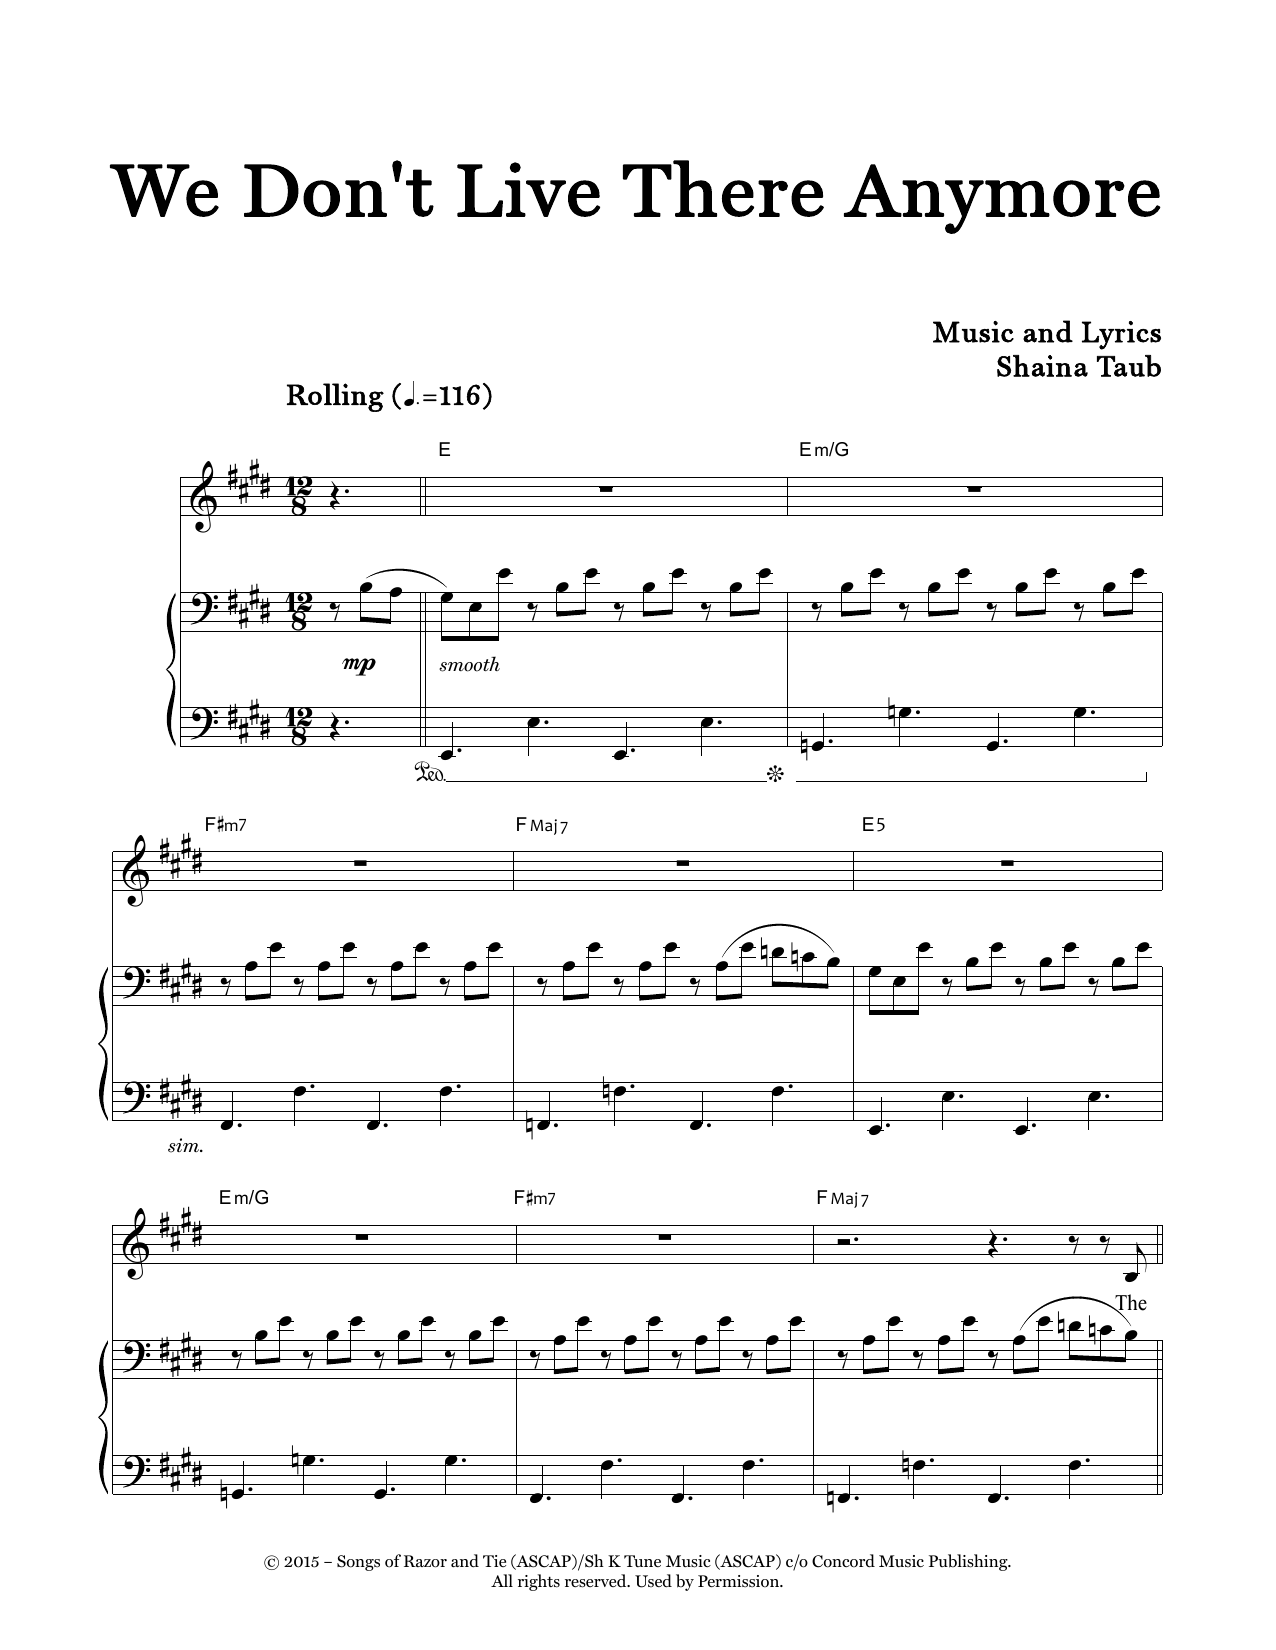 We Don't Live There Sheet Music